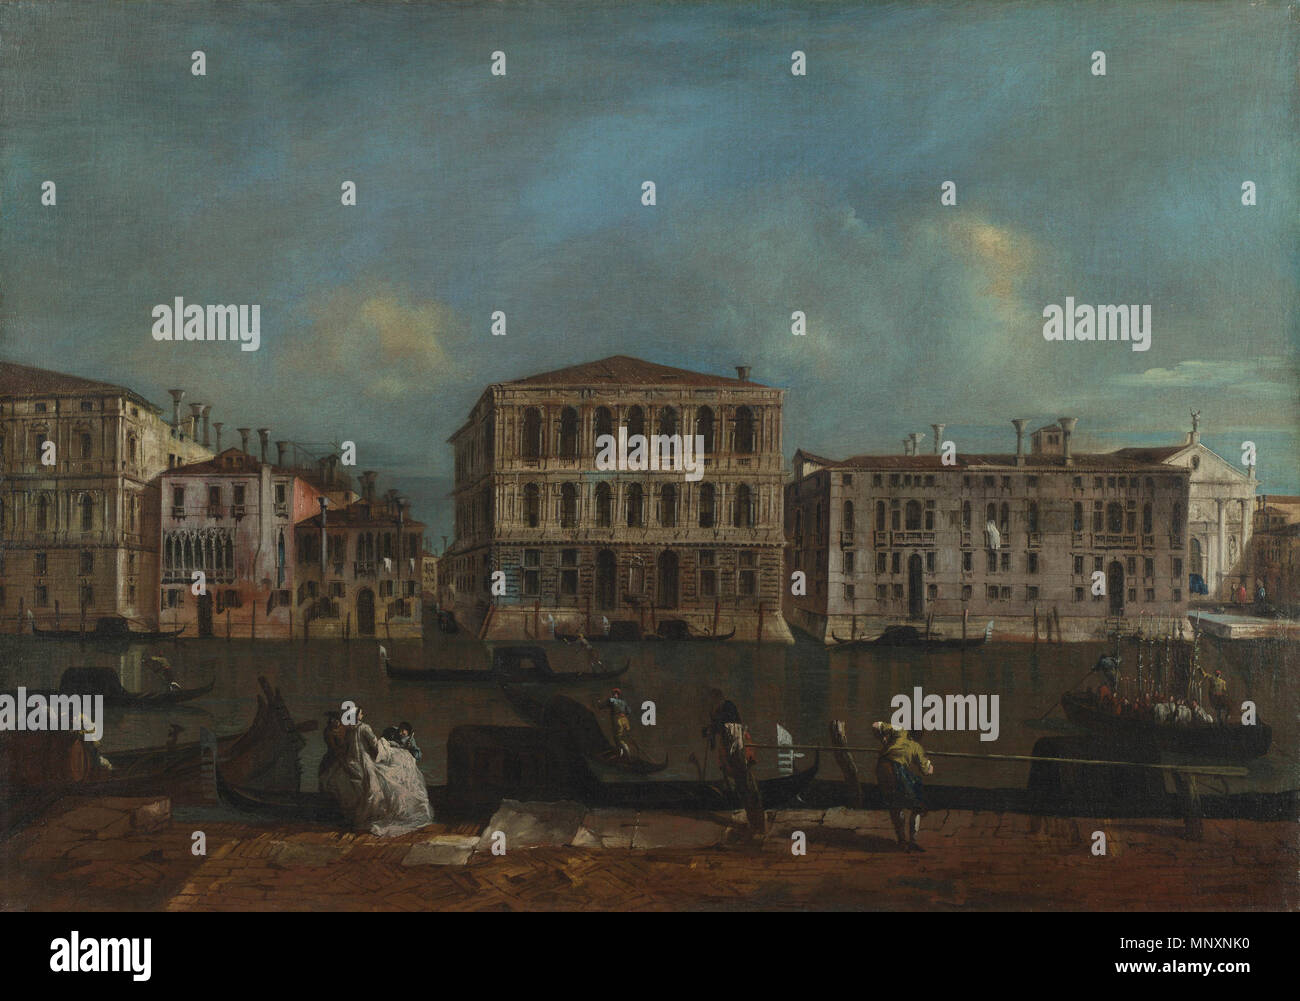 English: Venice: The Grand Canal with Palazzo Pesaro   from 1755 until 1760.   1174 The Grand Canal with Palazzo Pesaro, Francesco Guardi Stock Photo